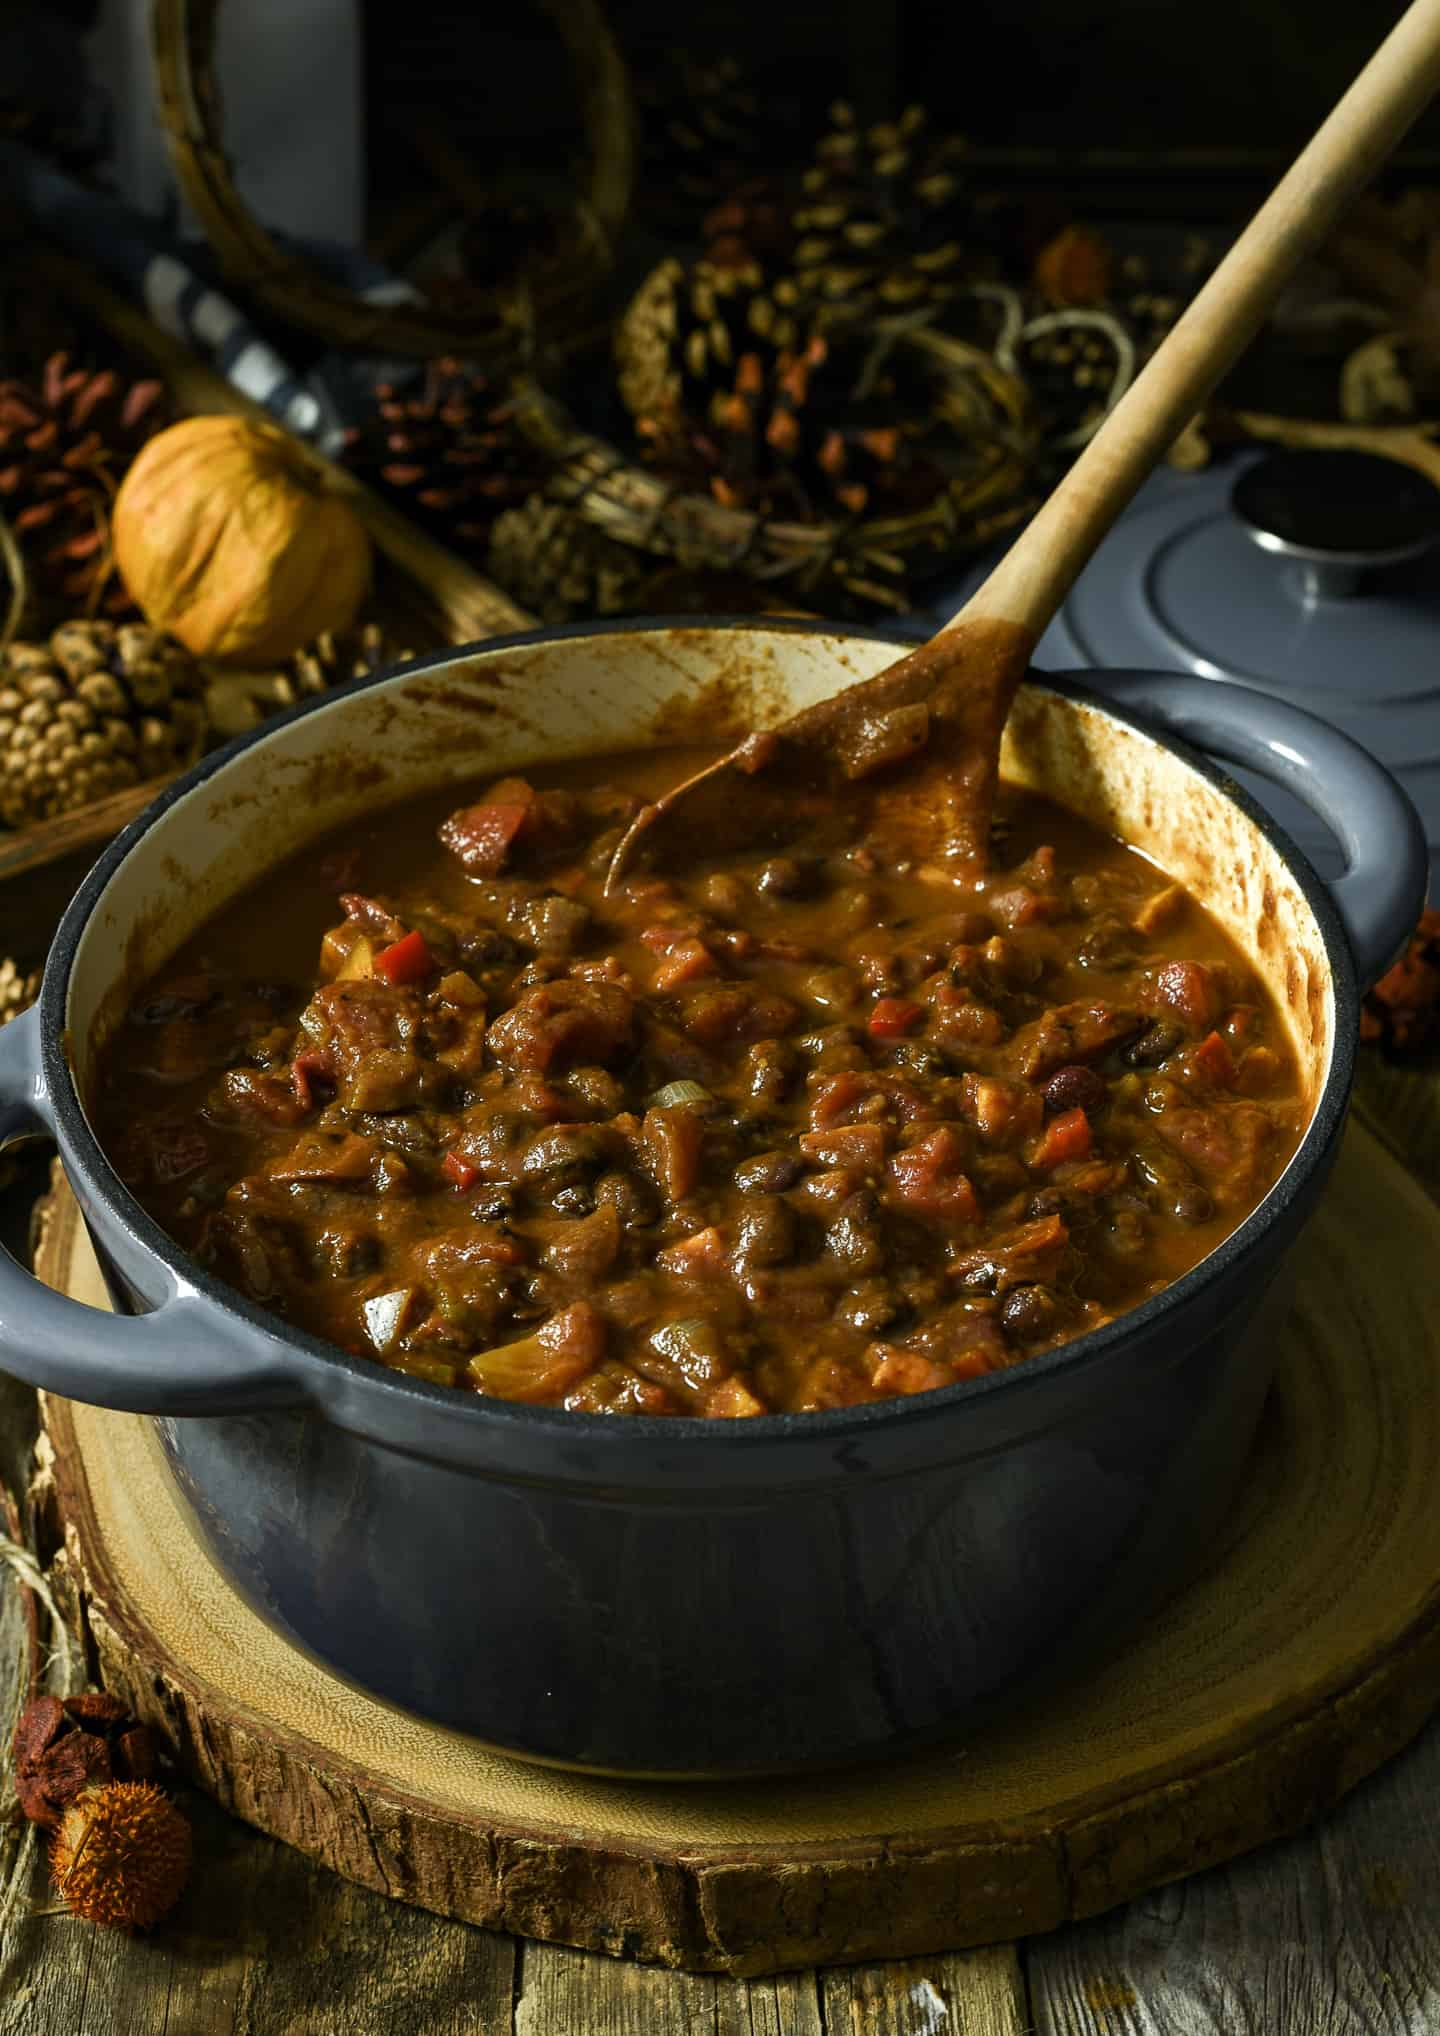 Pot of pumpkin chili with wooden serving spoon.